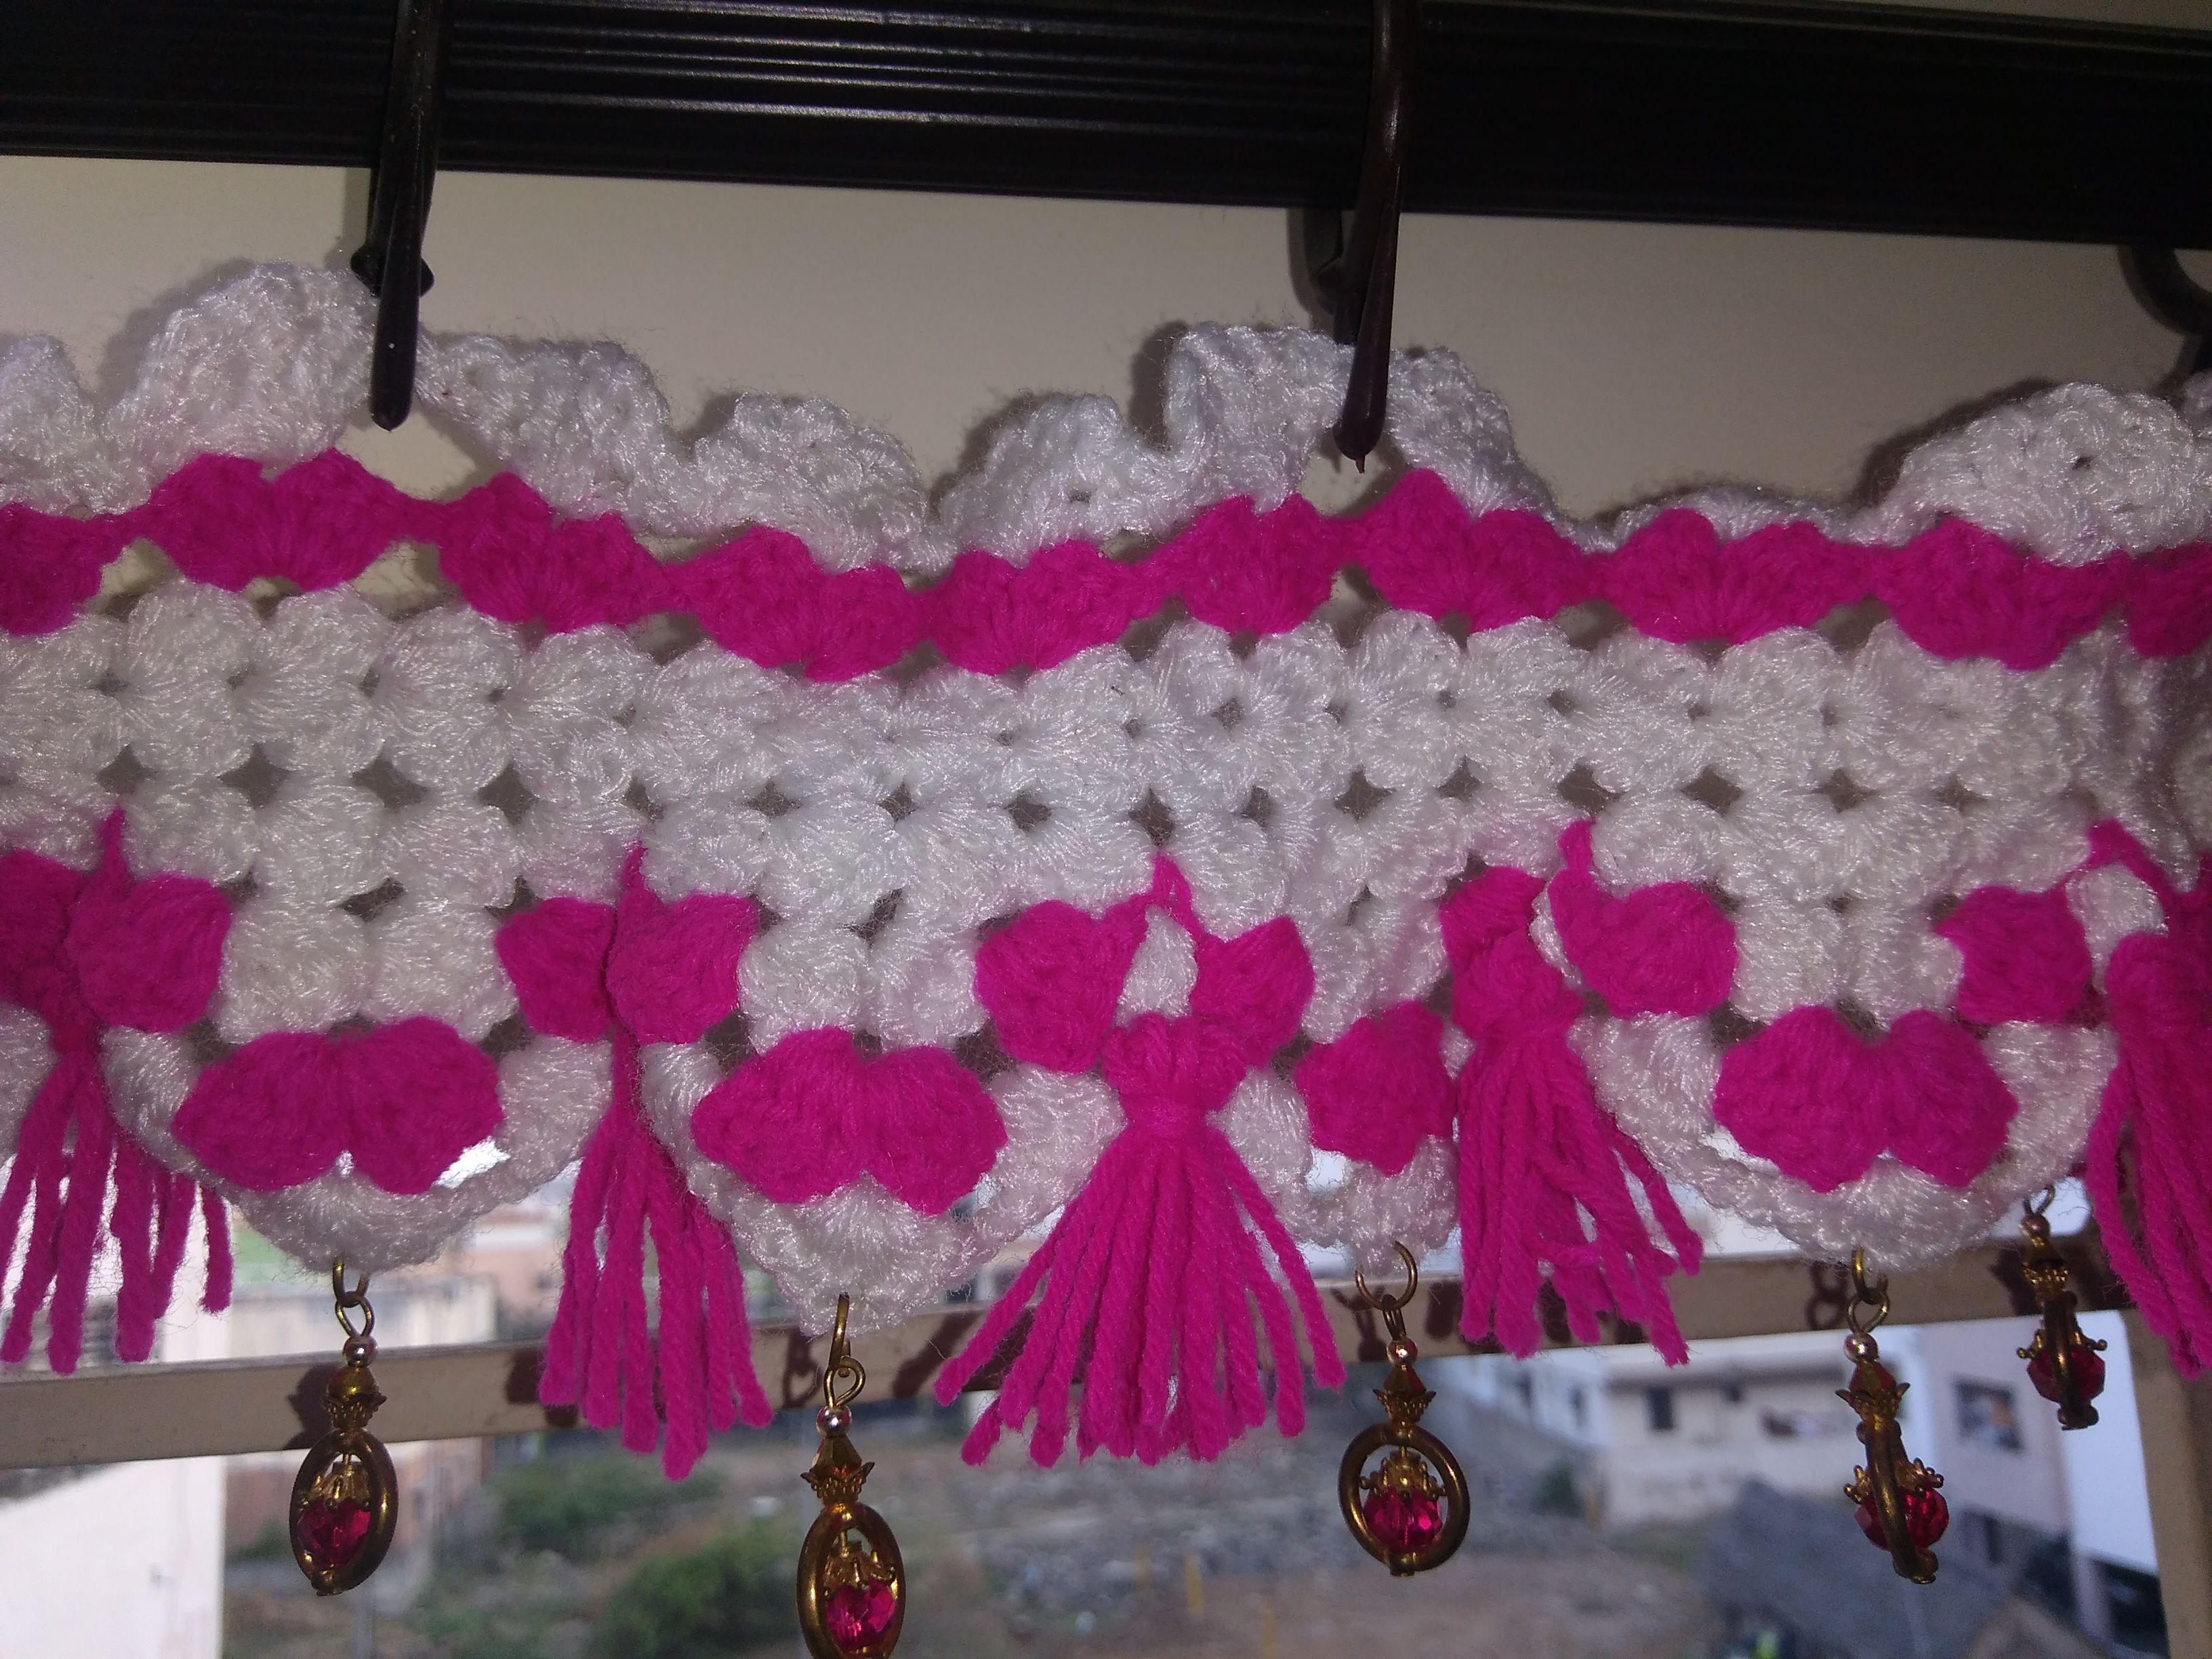 hanger hand crochet woolen door made